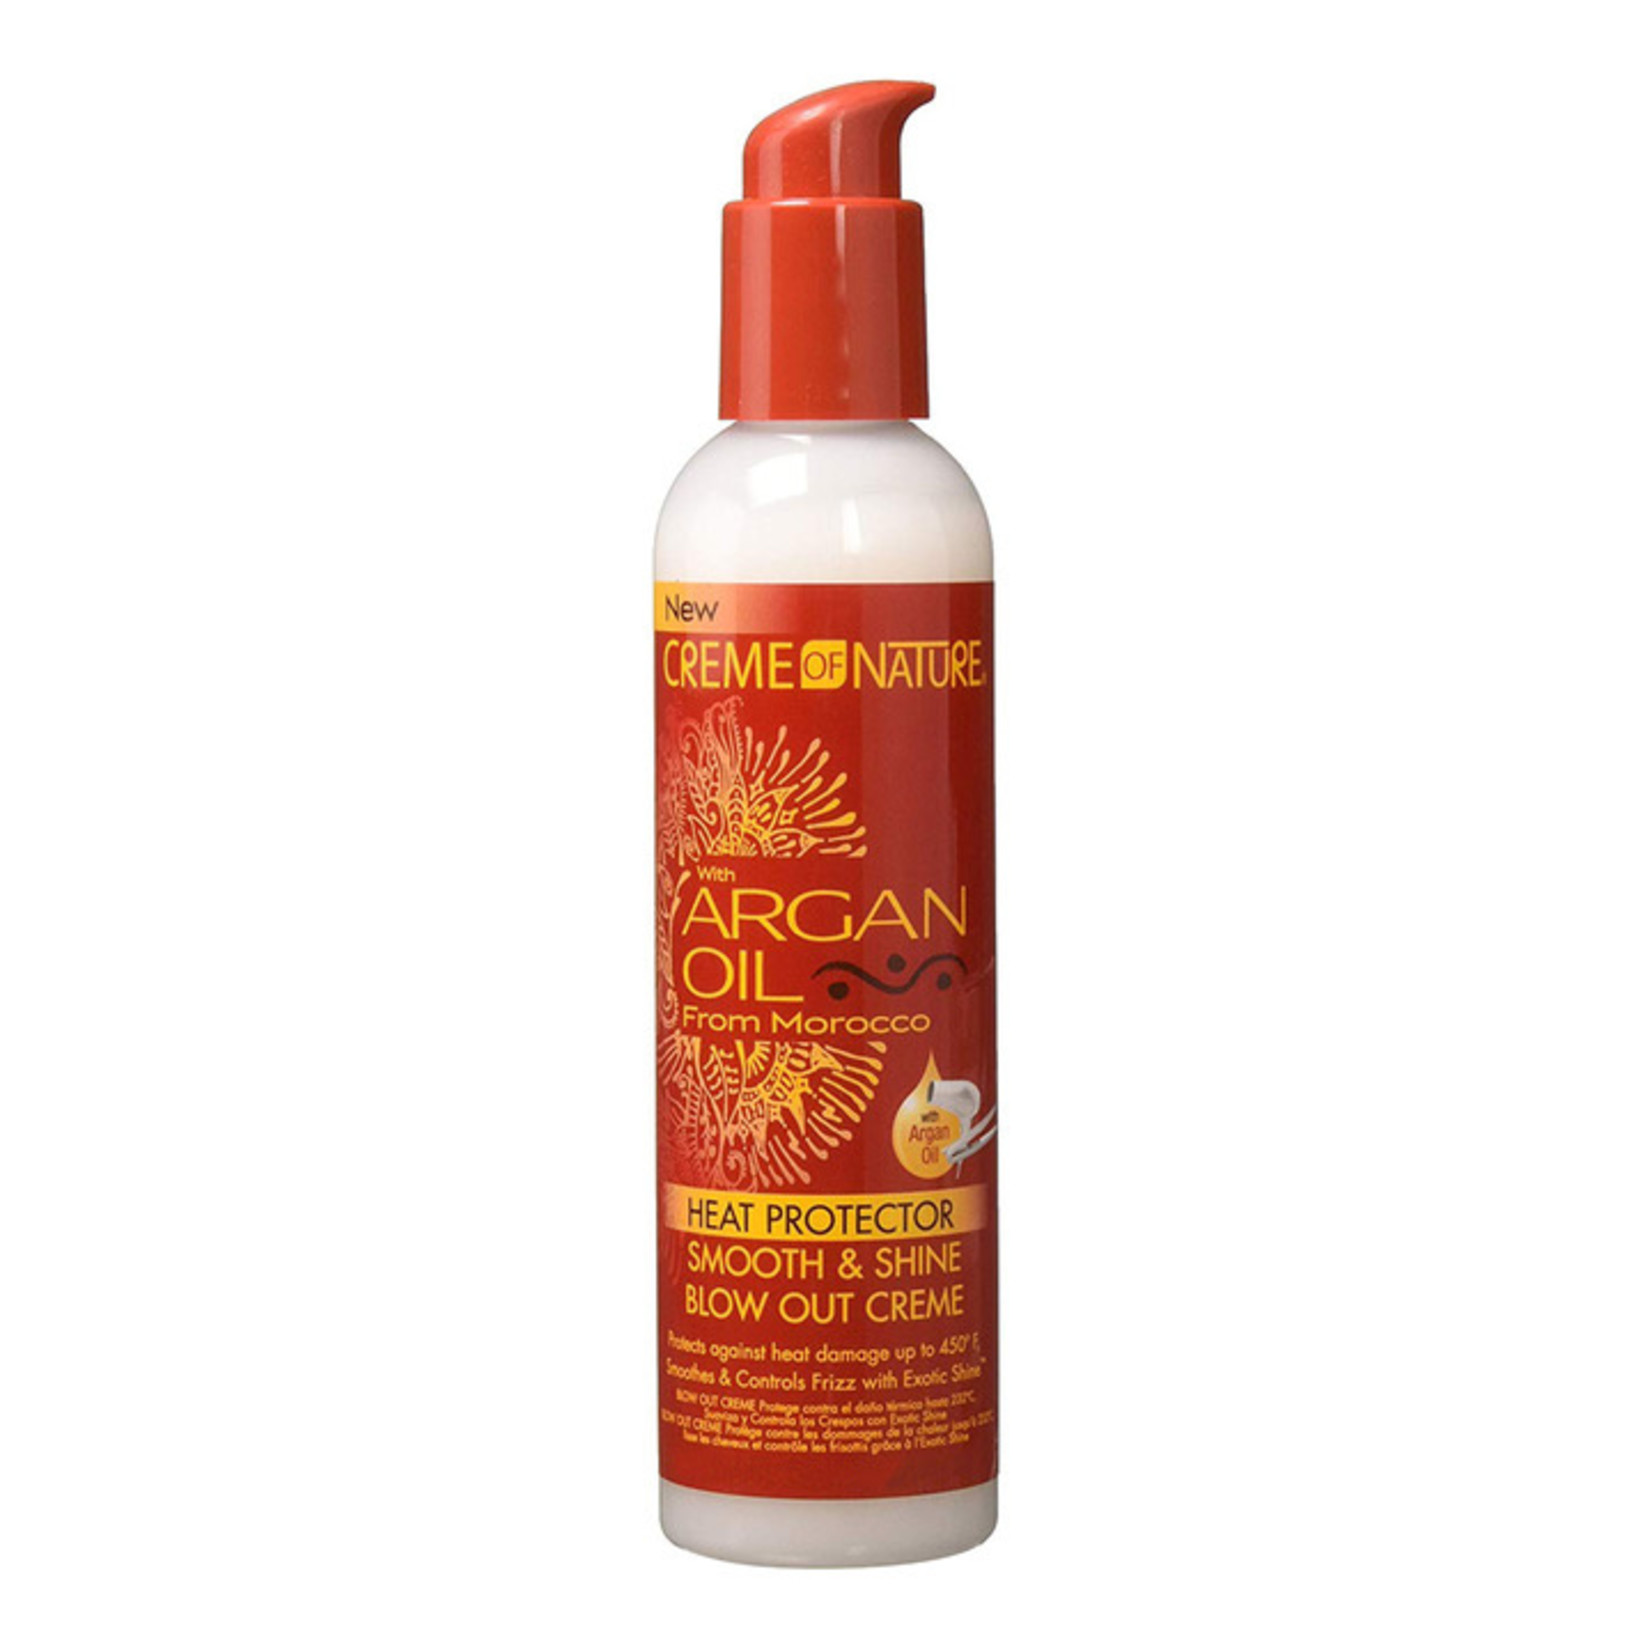 CREME OF NATURE CREME OF NATURE ARGAN OIL HEAT PROTECTOR BLOW OUT CREAM  [8.45]